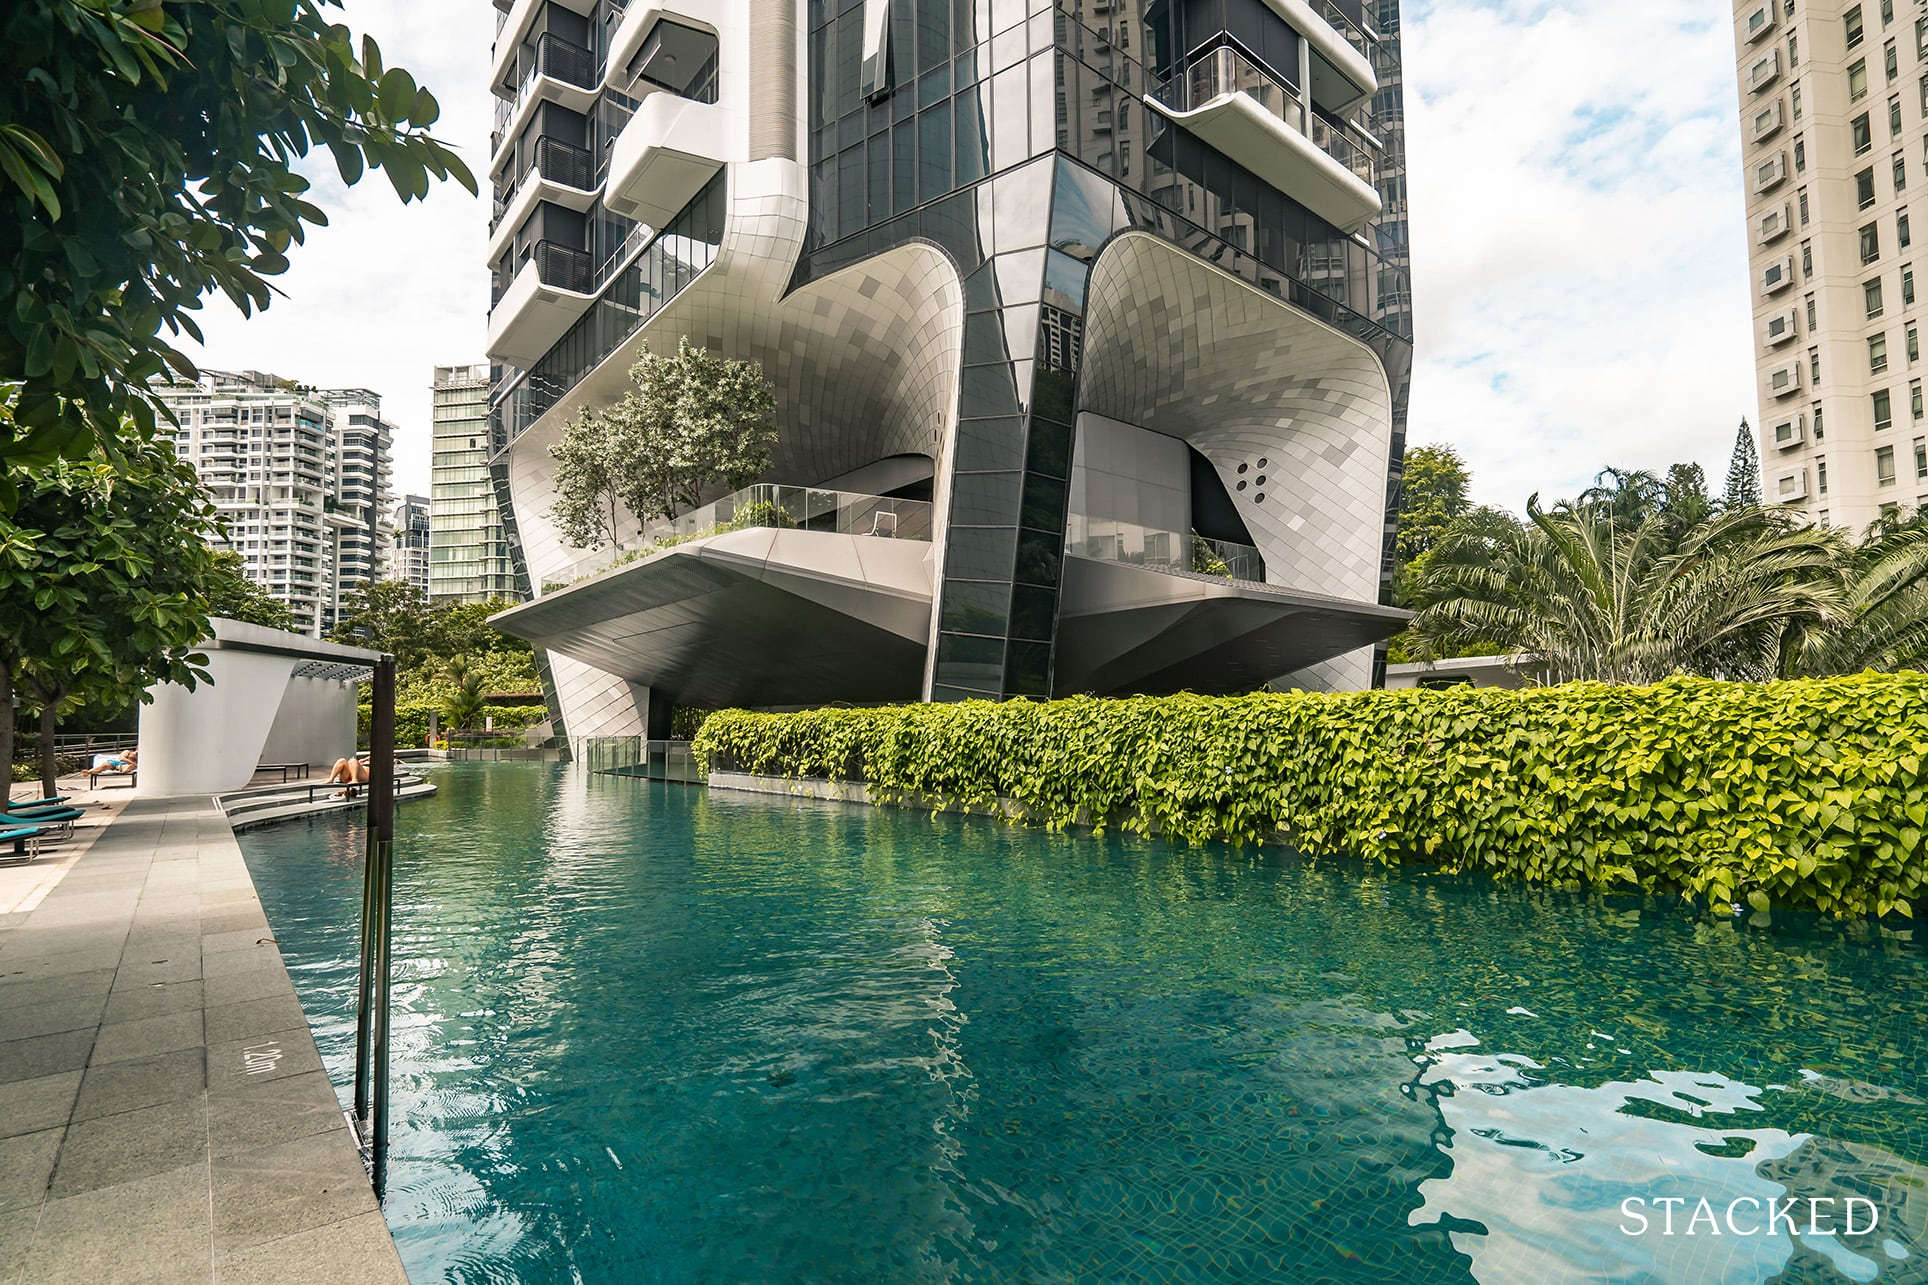 the Scotts tower swimming pool